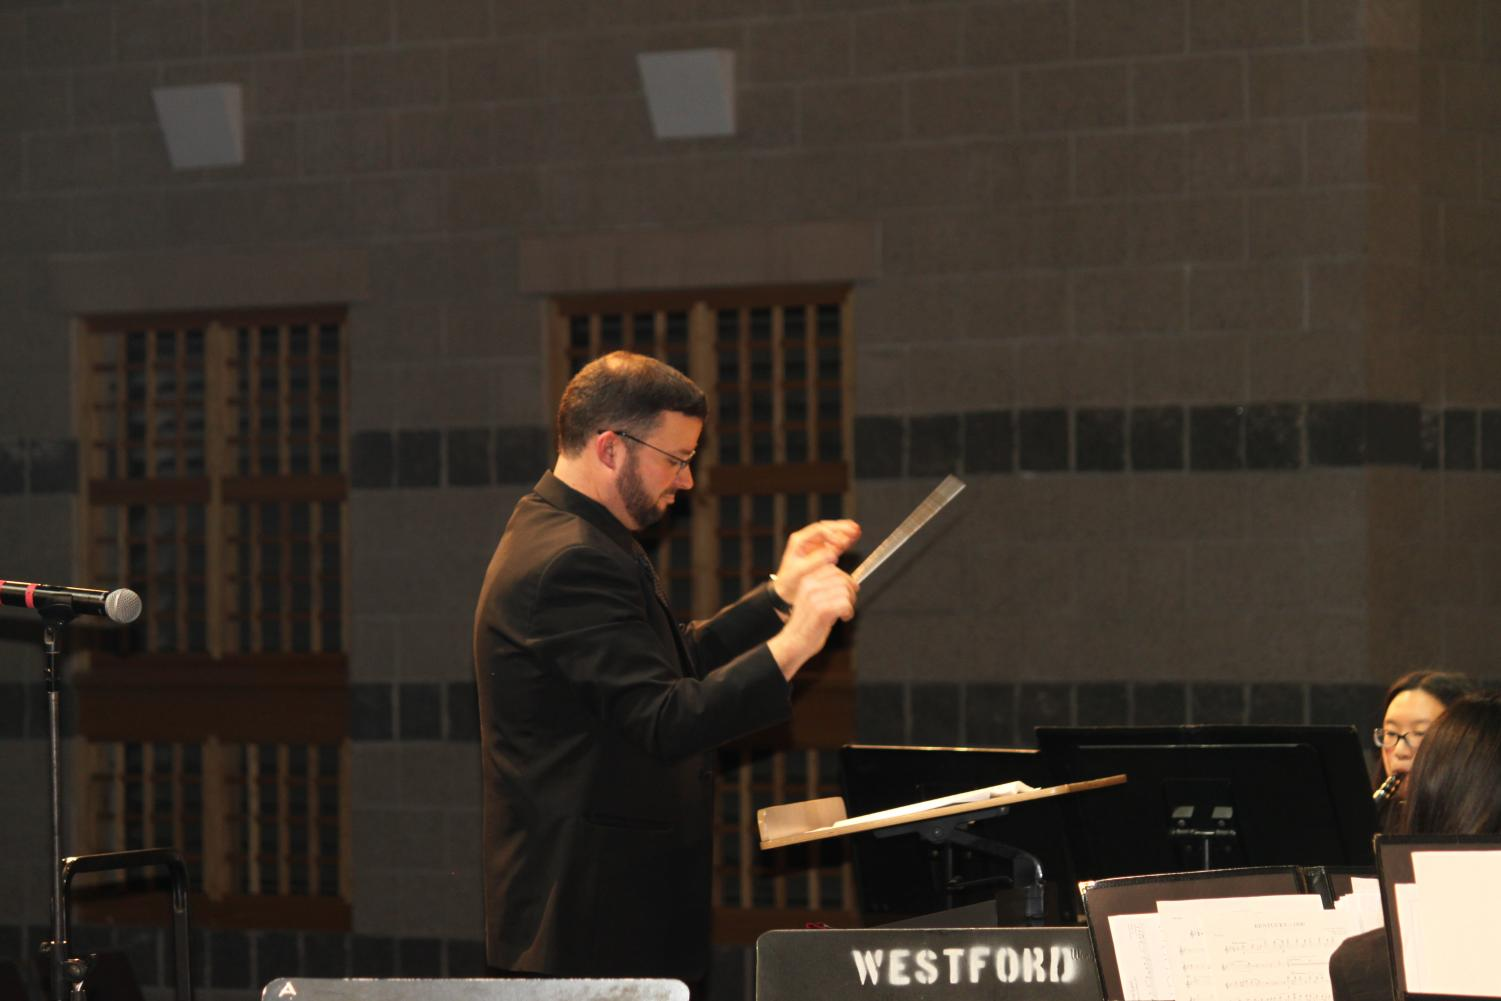 Band+Director+George+Arsenault+conducts+the+musicians+during+%27Kentucky+1800%27.